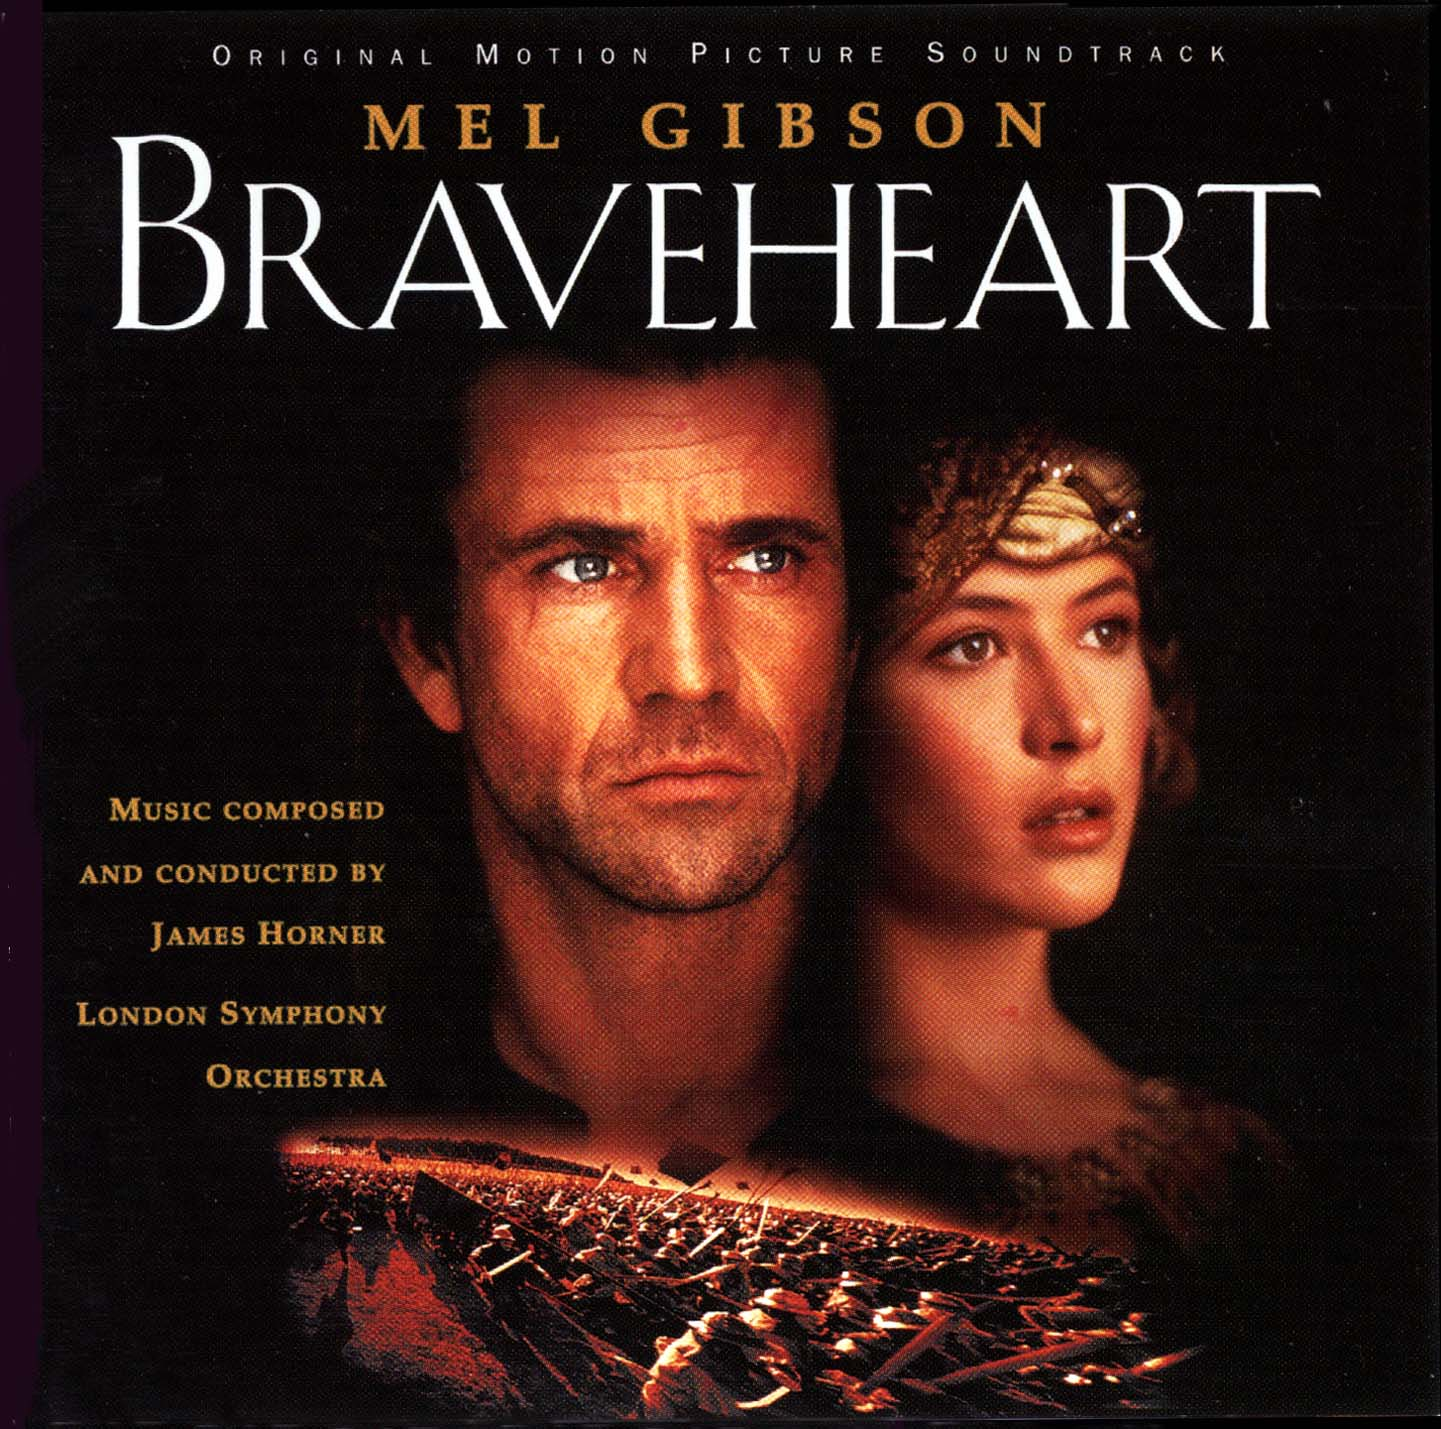 James Horner , London Symphony Orchestra, The* London Symphony Orchestra - Braveheart (Original Motion Picture Soundtrack)